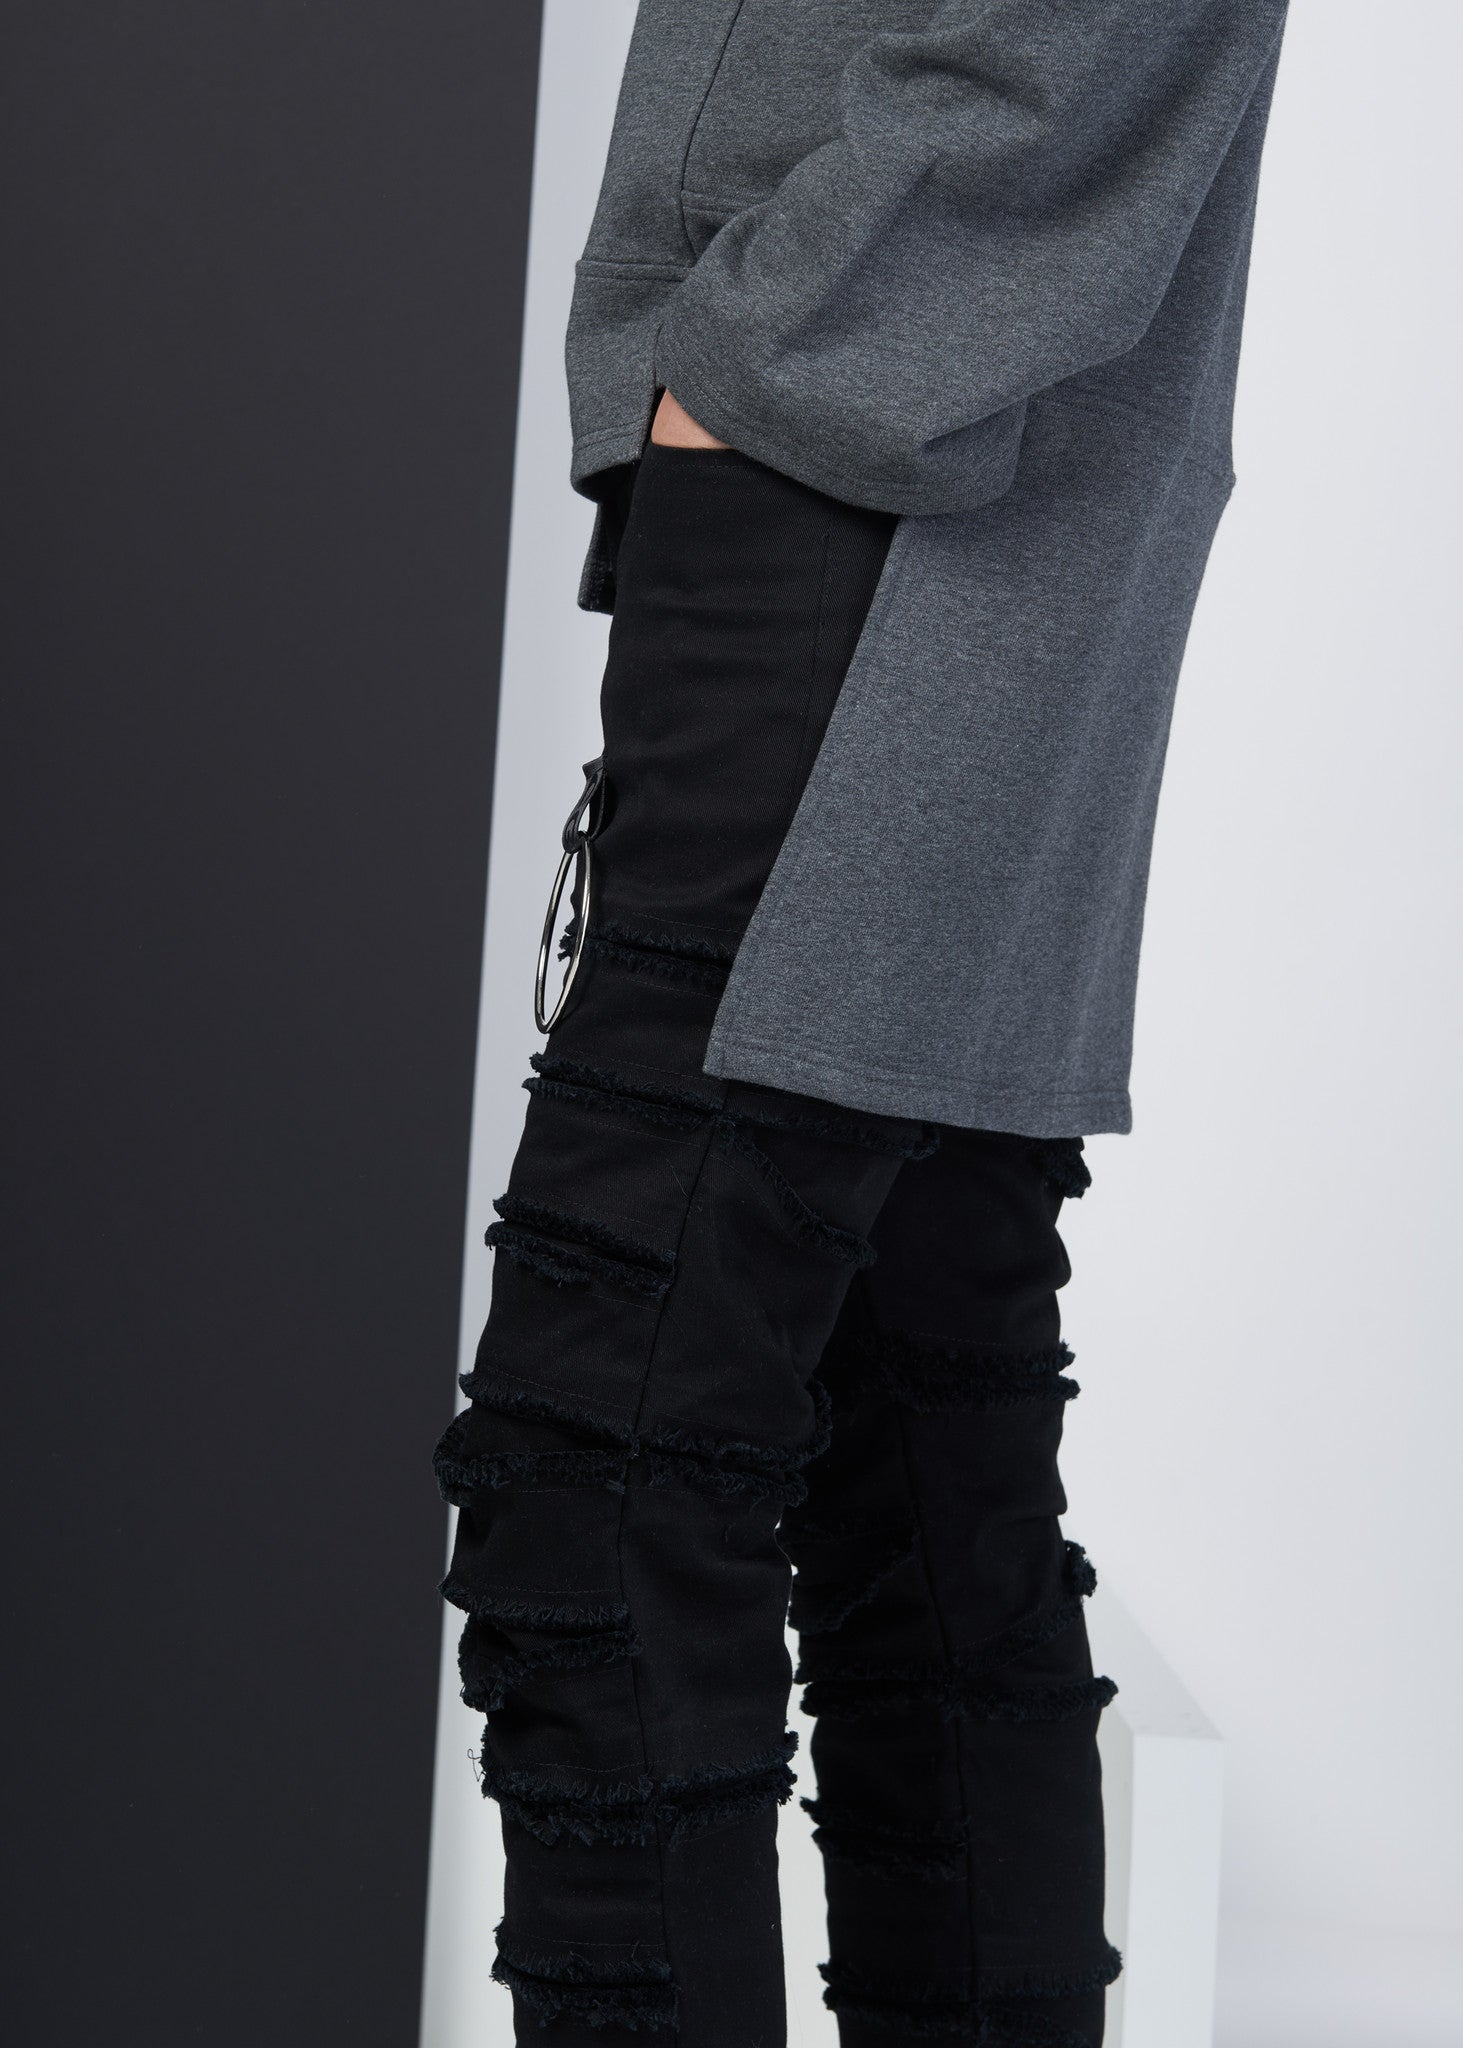 Distressed Layers denim - CGNY